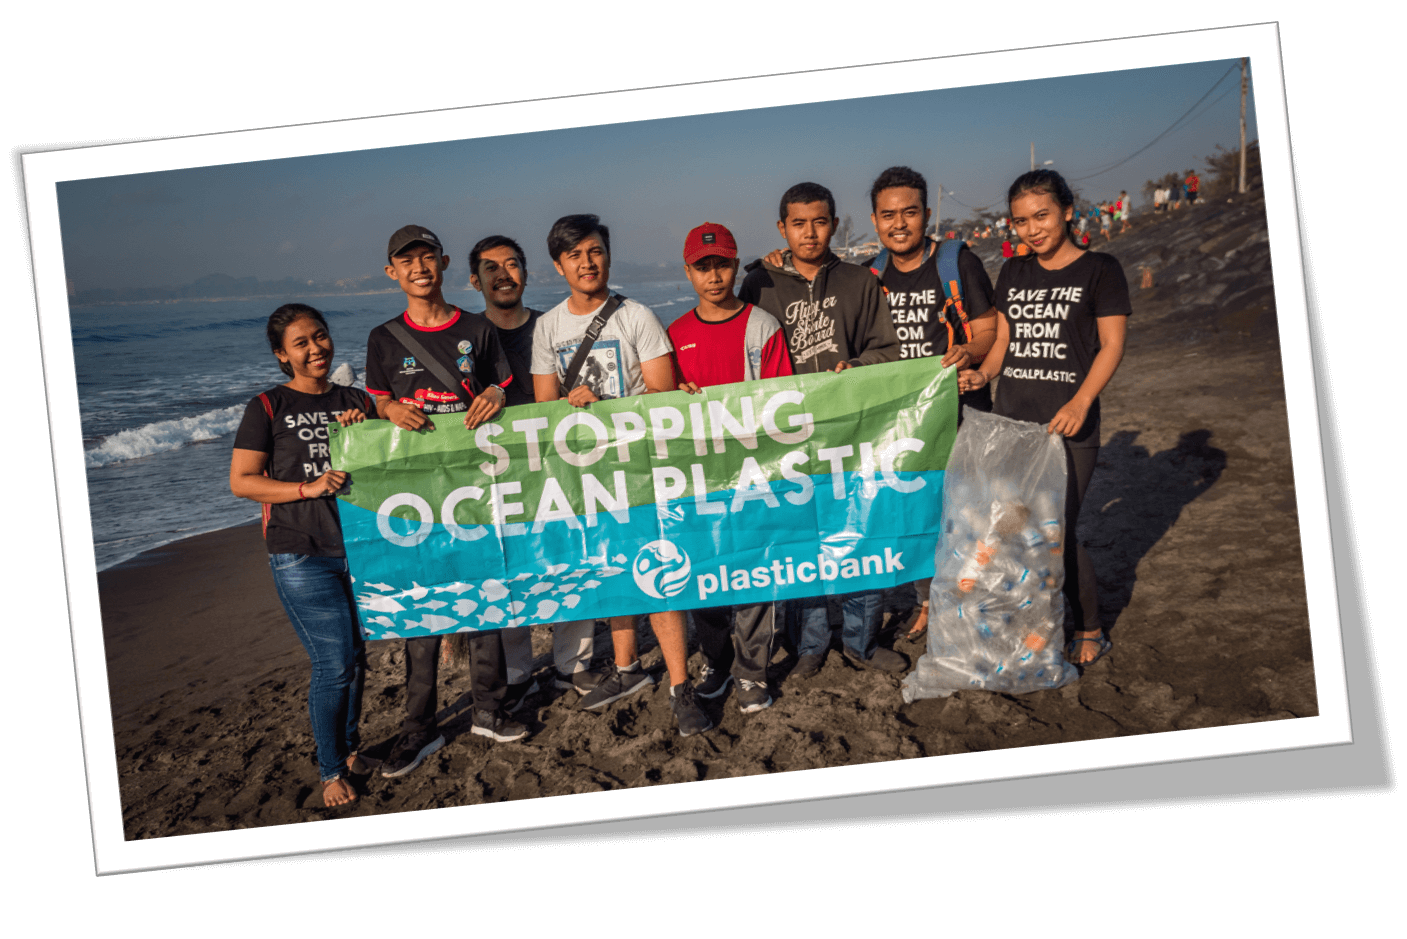 Plastic collectors posing with Stopping Ocean Plastic sign by the Plastic Bank